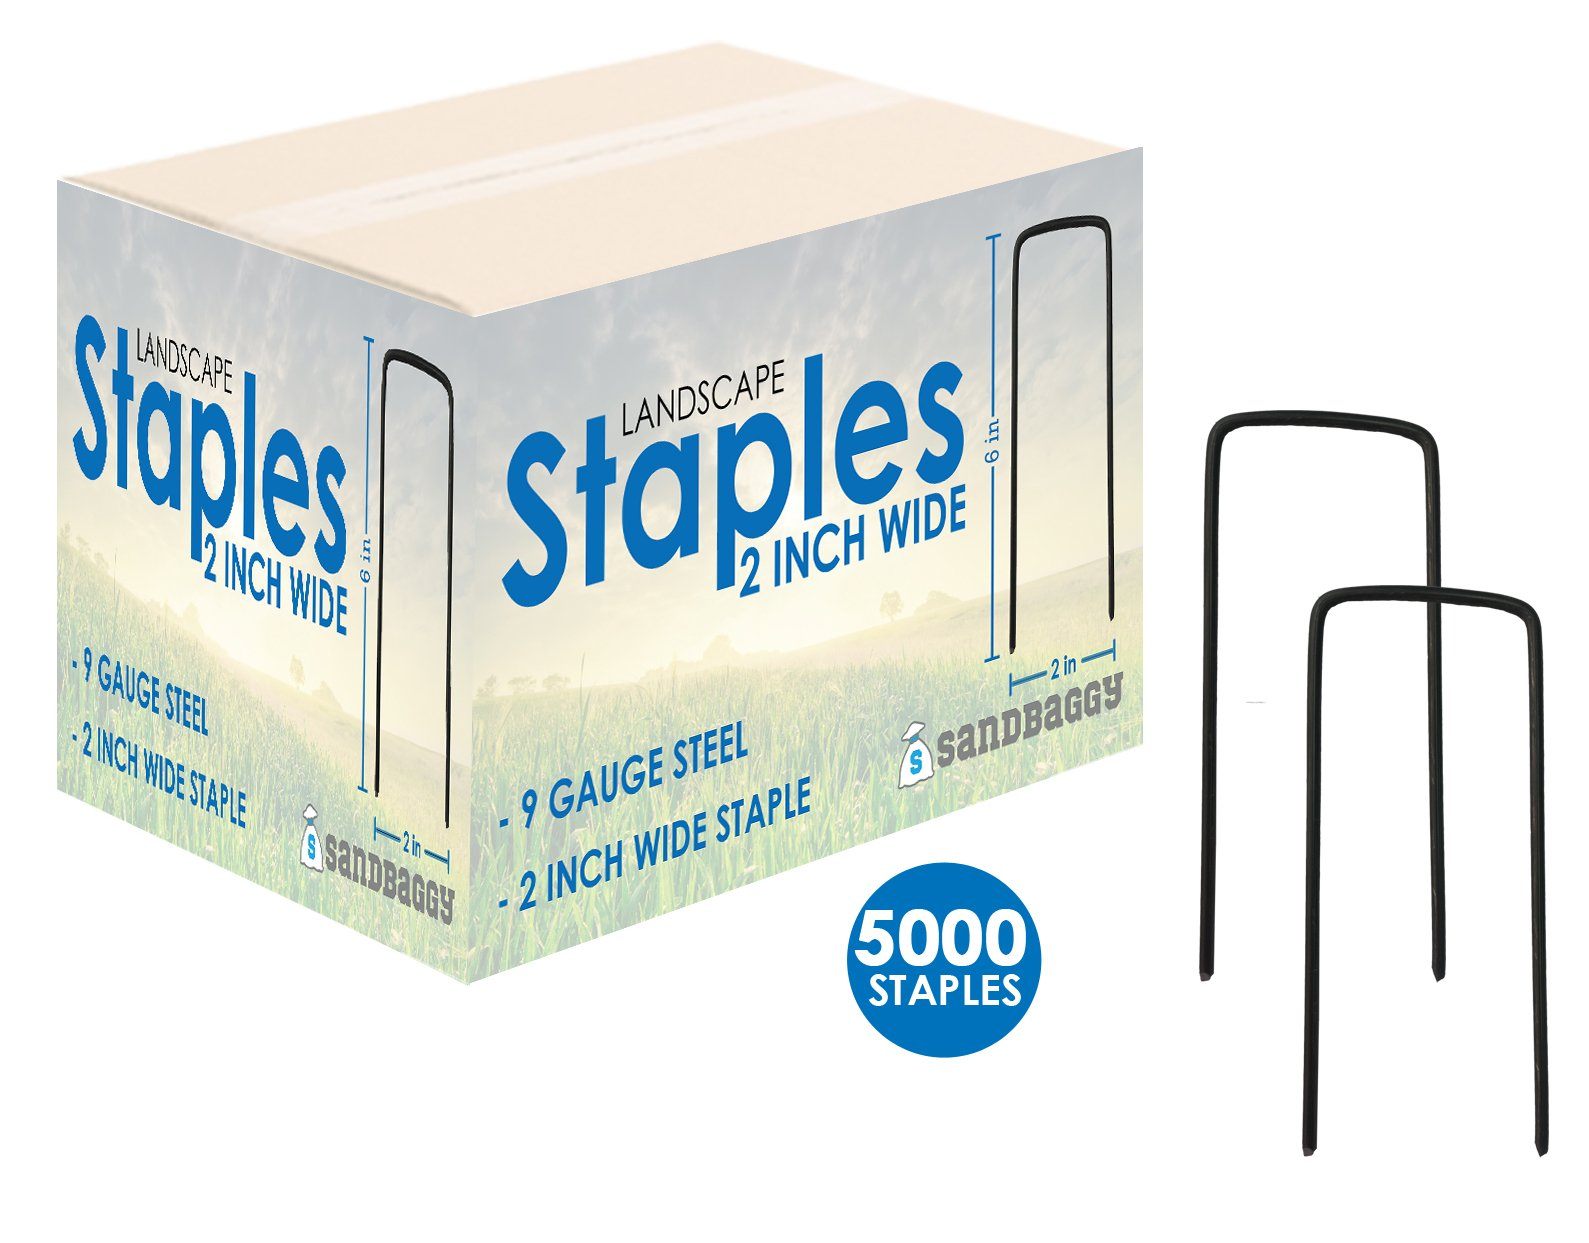 Sandbaggy 6'' Long x 2'' Wide EXTRA WIDE Landscape Staples~ Landscape Fabric Pins -Garden Staples Heavy Duty - Ground Cover Staples - Fence Anchors - Lawn Nails - Garden Stakes (5000 Staples)